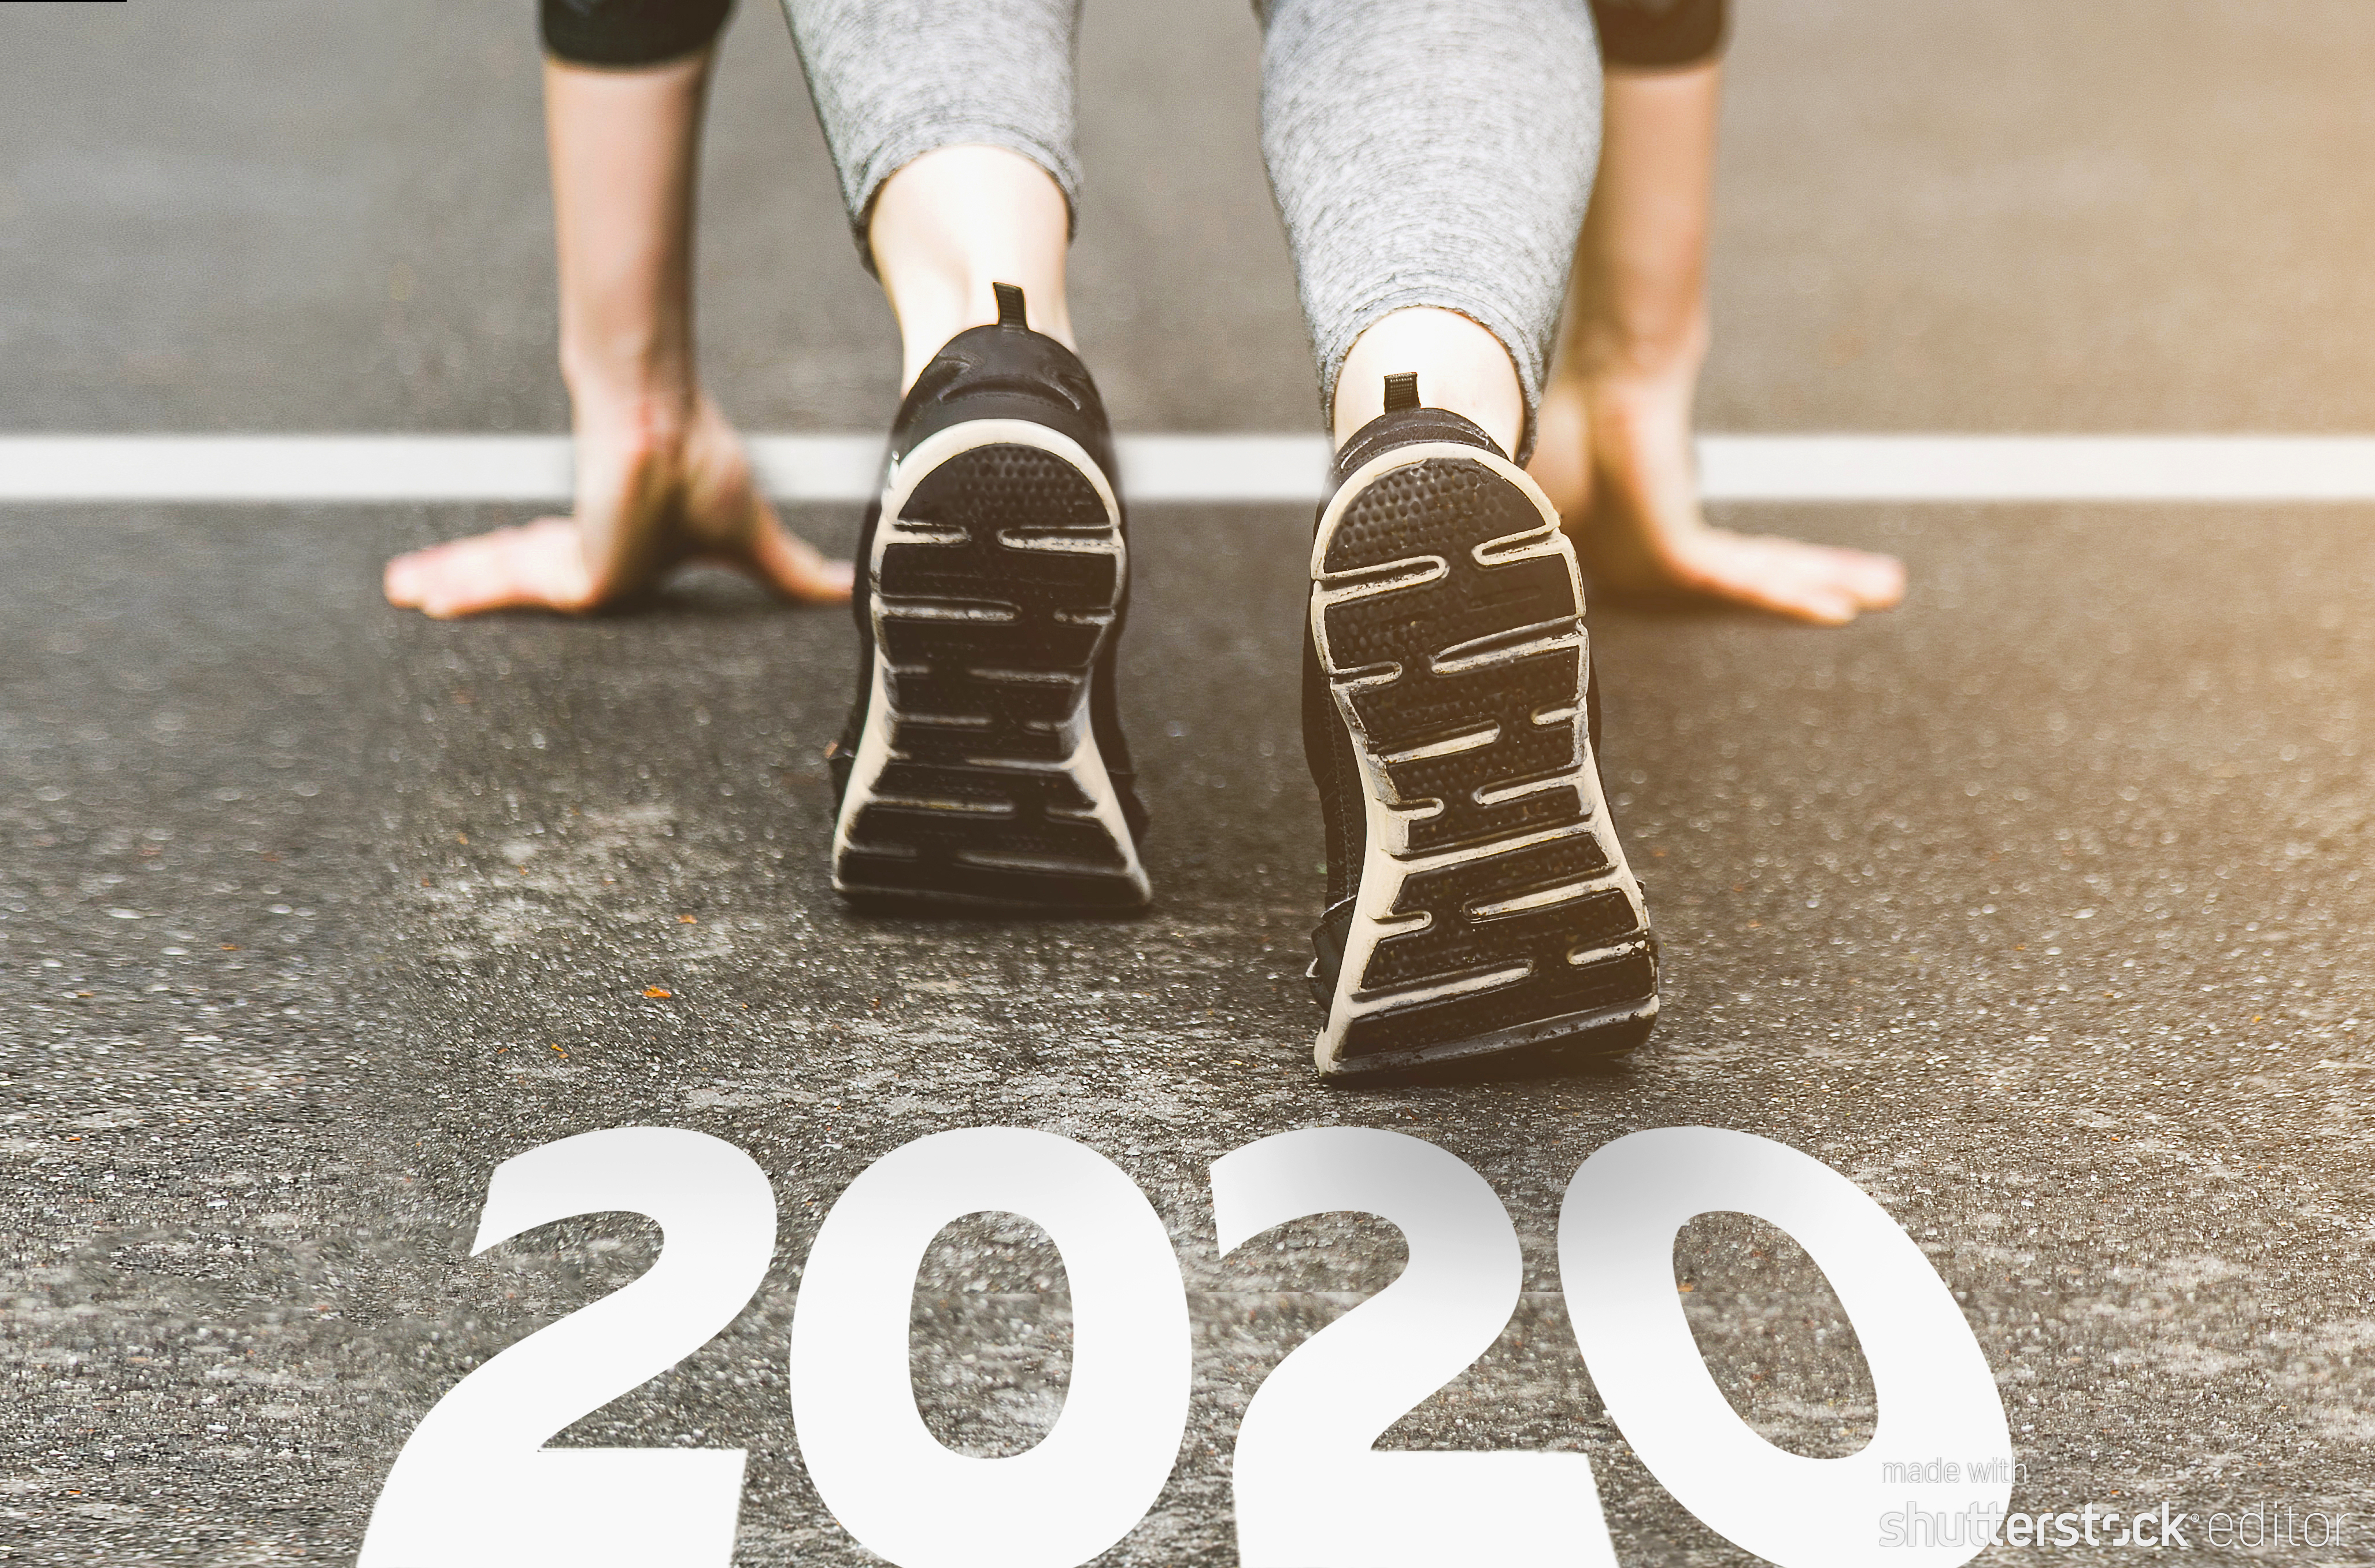 Set your property goals for 2020 - January 2020